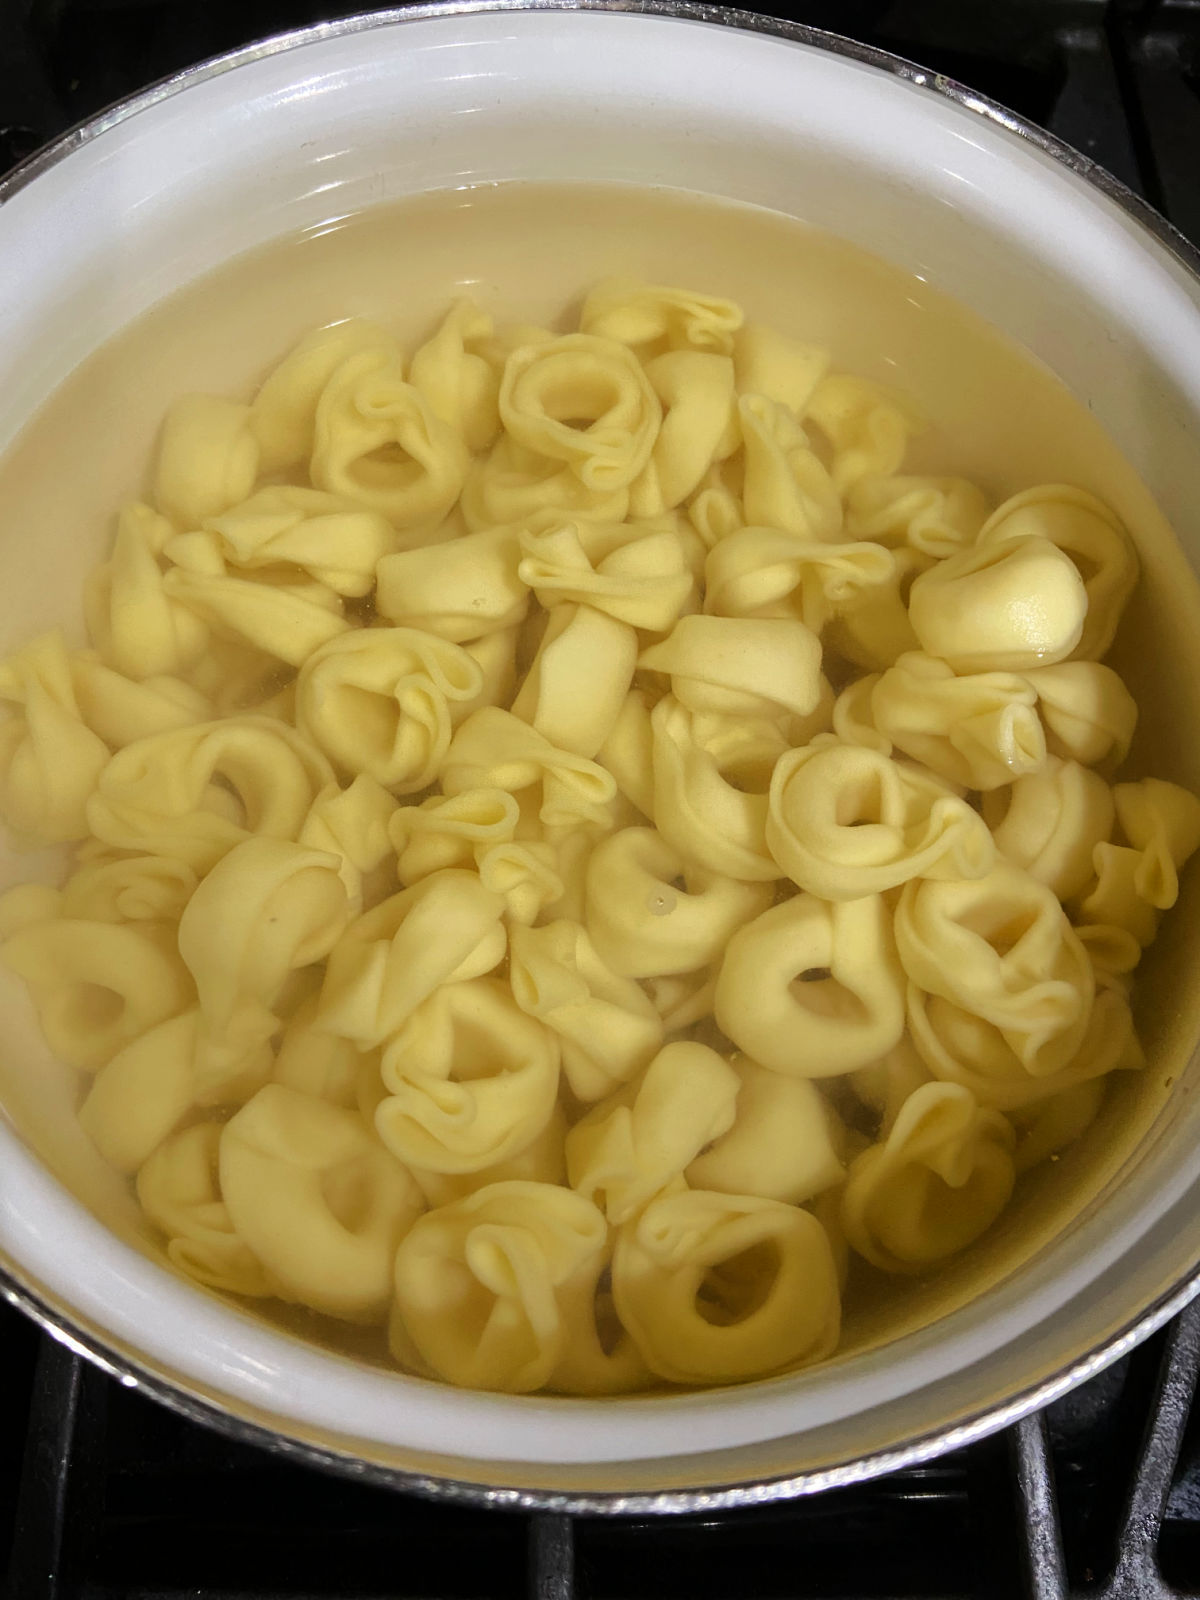 Boiling cheese tortellini in a pot of water.